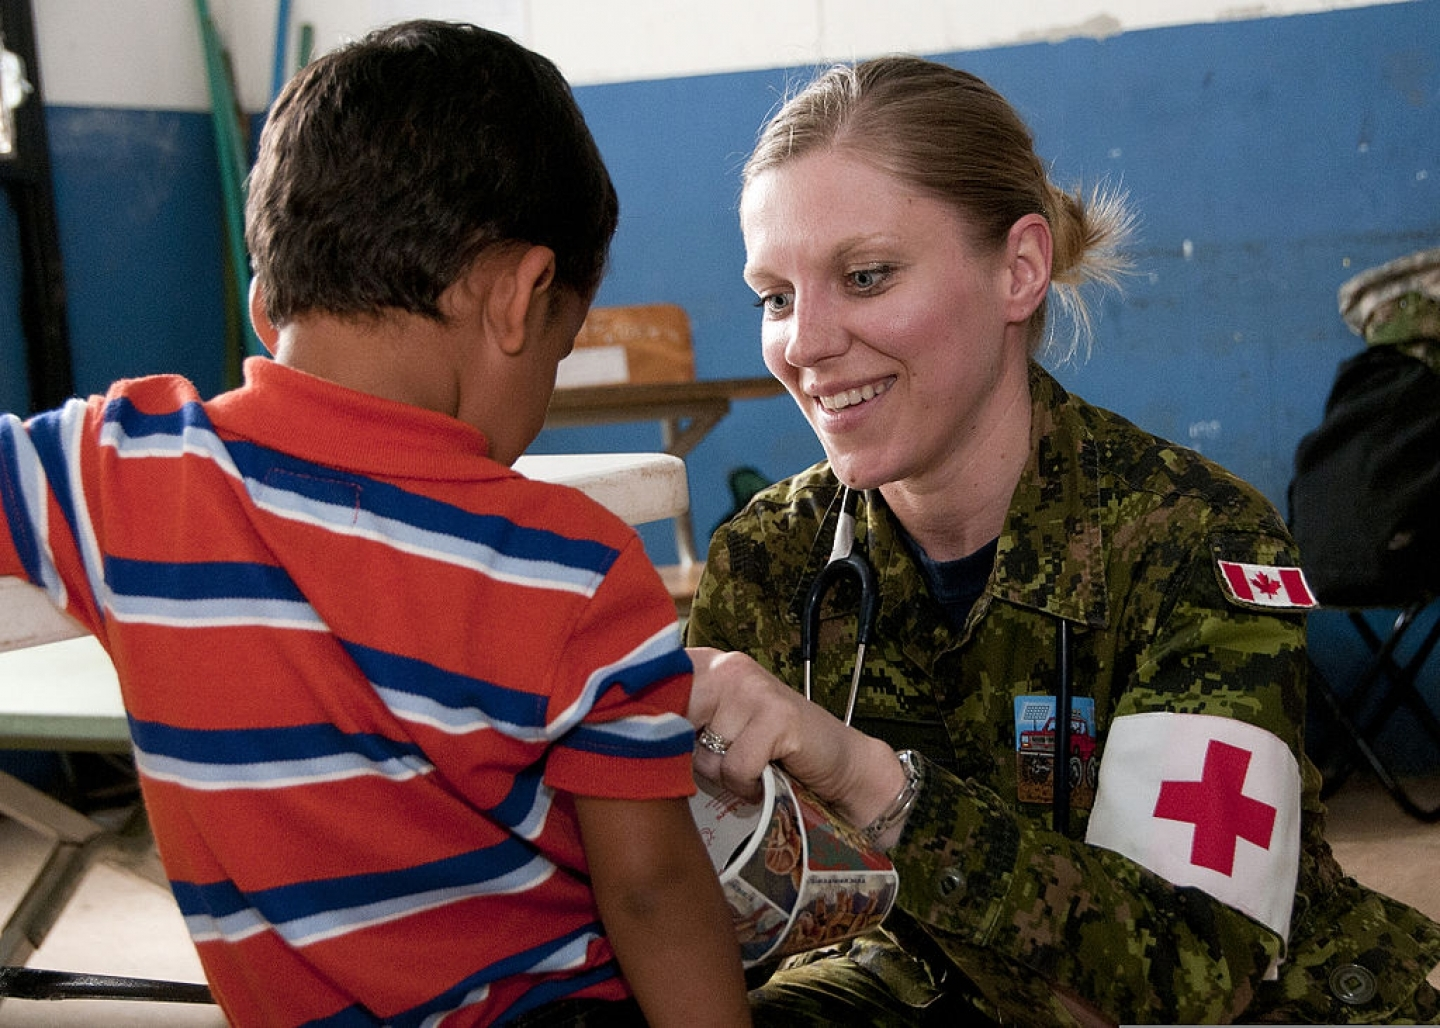 """Canadian Forces Capt. Karoline Martin, a nurse with the Canadian Forces Health Services Center, gives a child a sticker after an examination during a medical clinic April 15, 2013, in Caluco, El Salvador"". Photo by TSgt Mark Wyatt [Public domain], via Wikimedia Commons"